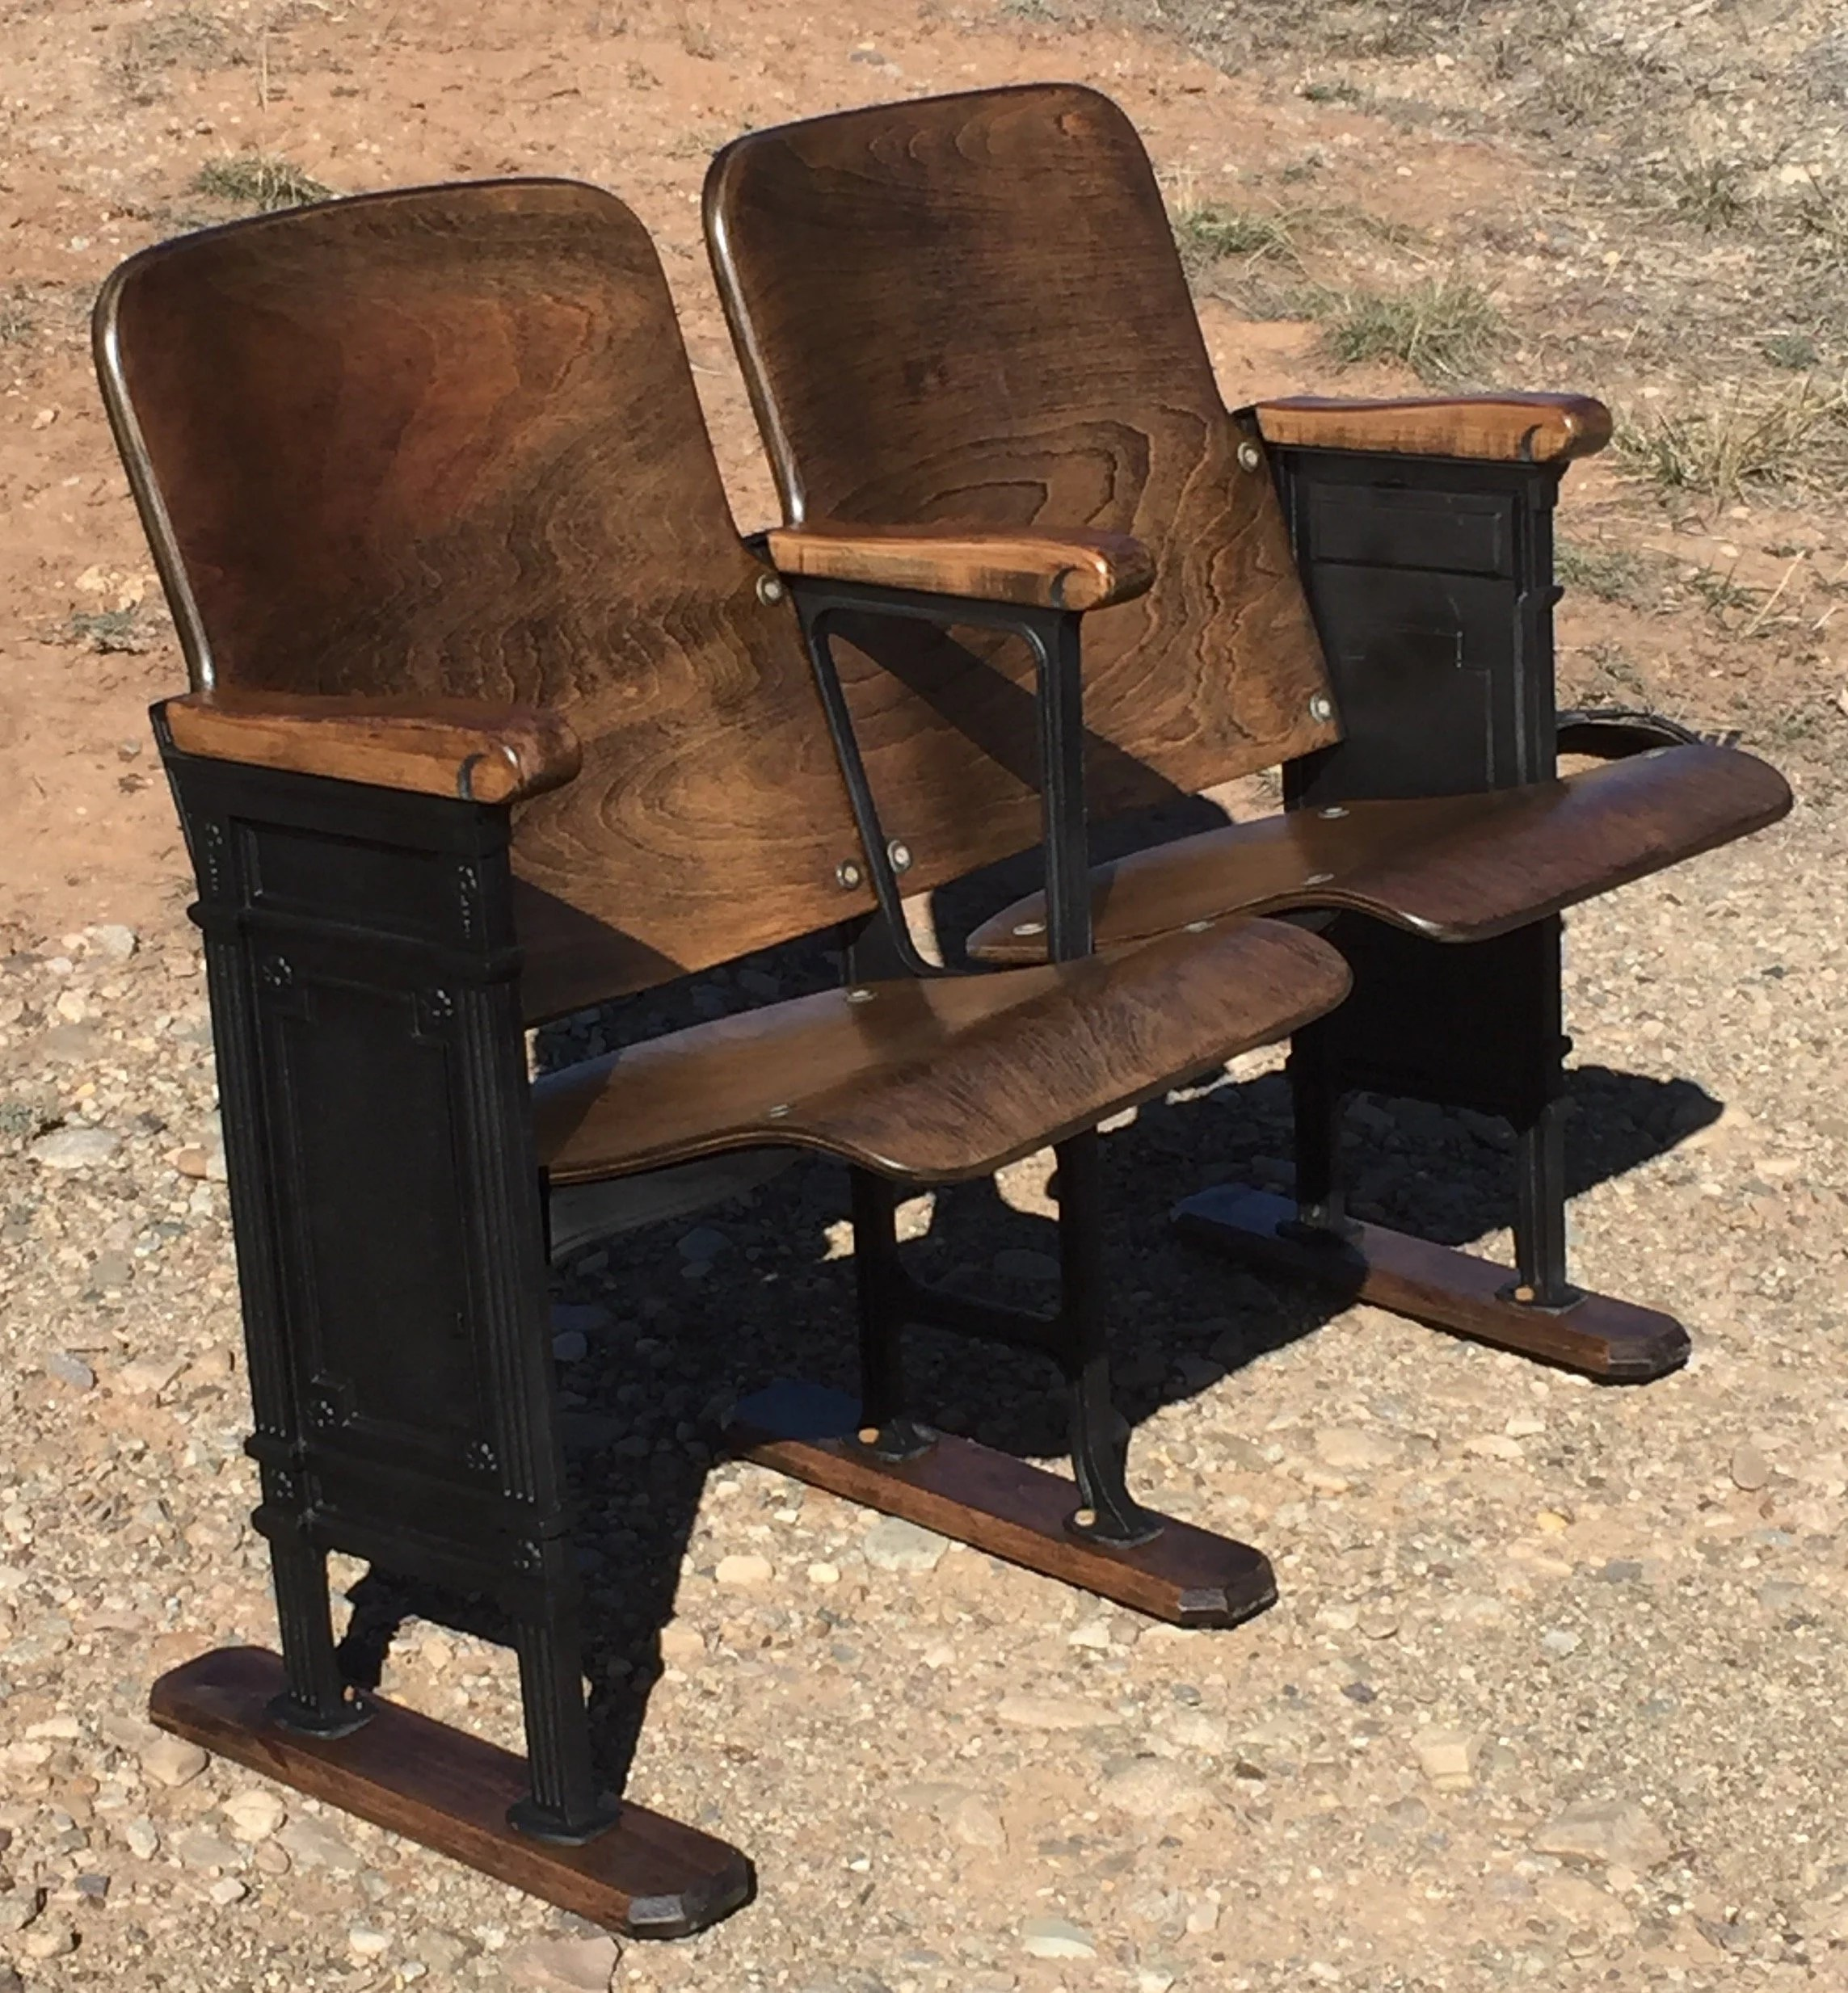 Refurbished Chairs Sold Accepting Orders Set Of Two Refurbished Theatre Chairs Theater Seats Theater Chairs Theater Seats Vintage School Chairs Church Pew